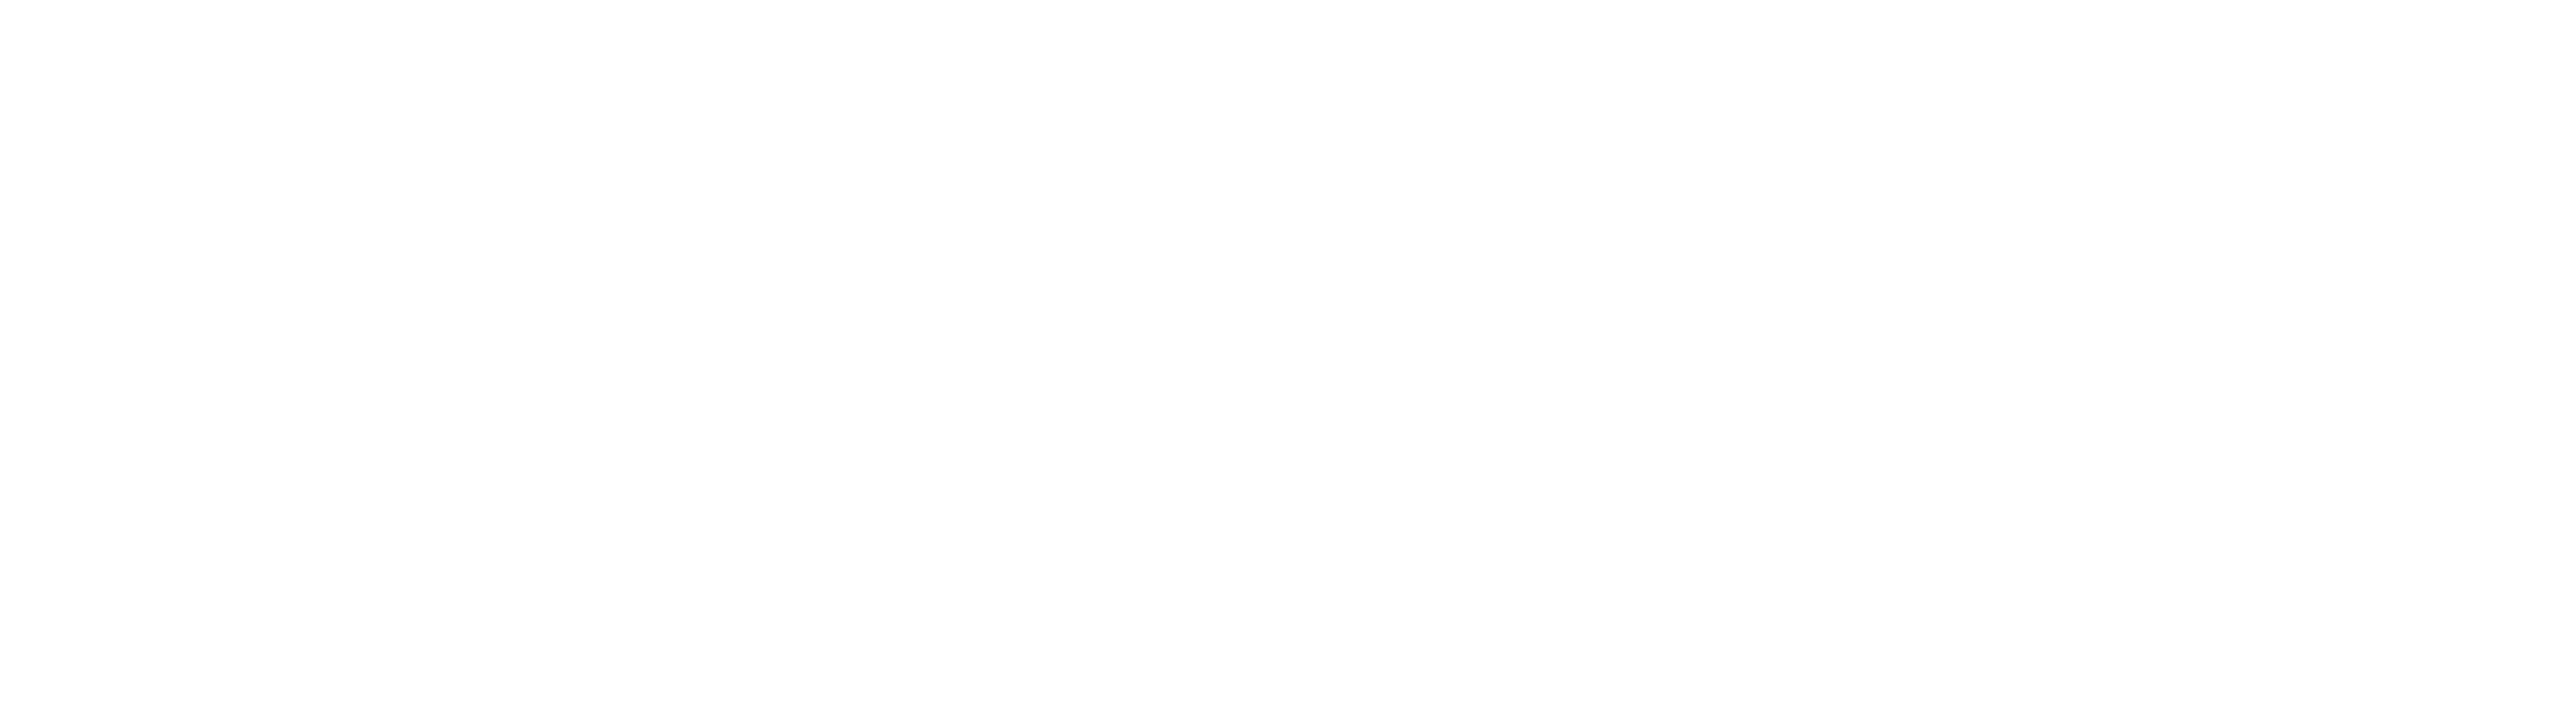 Healthcare Workers First logo